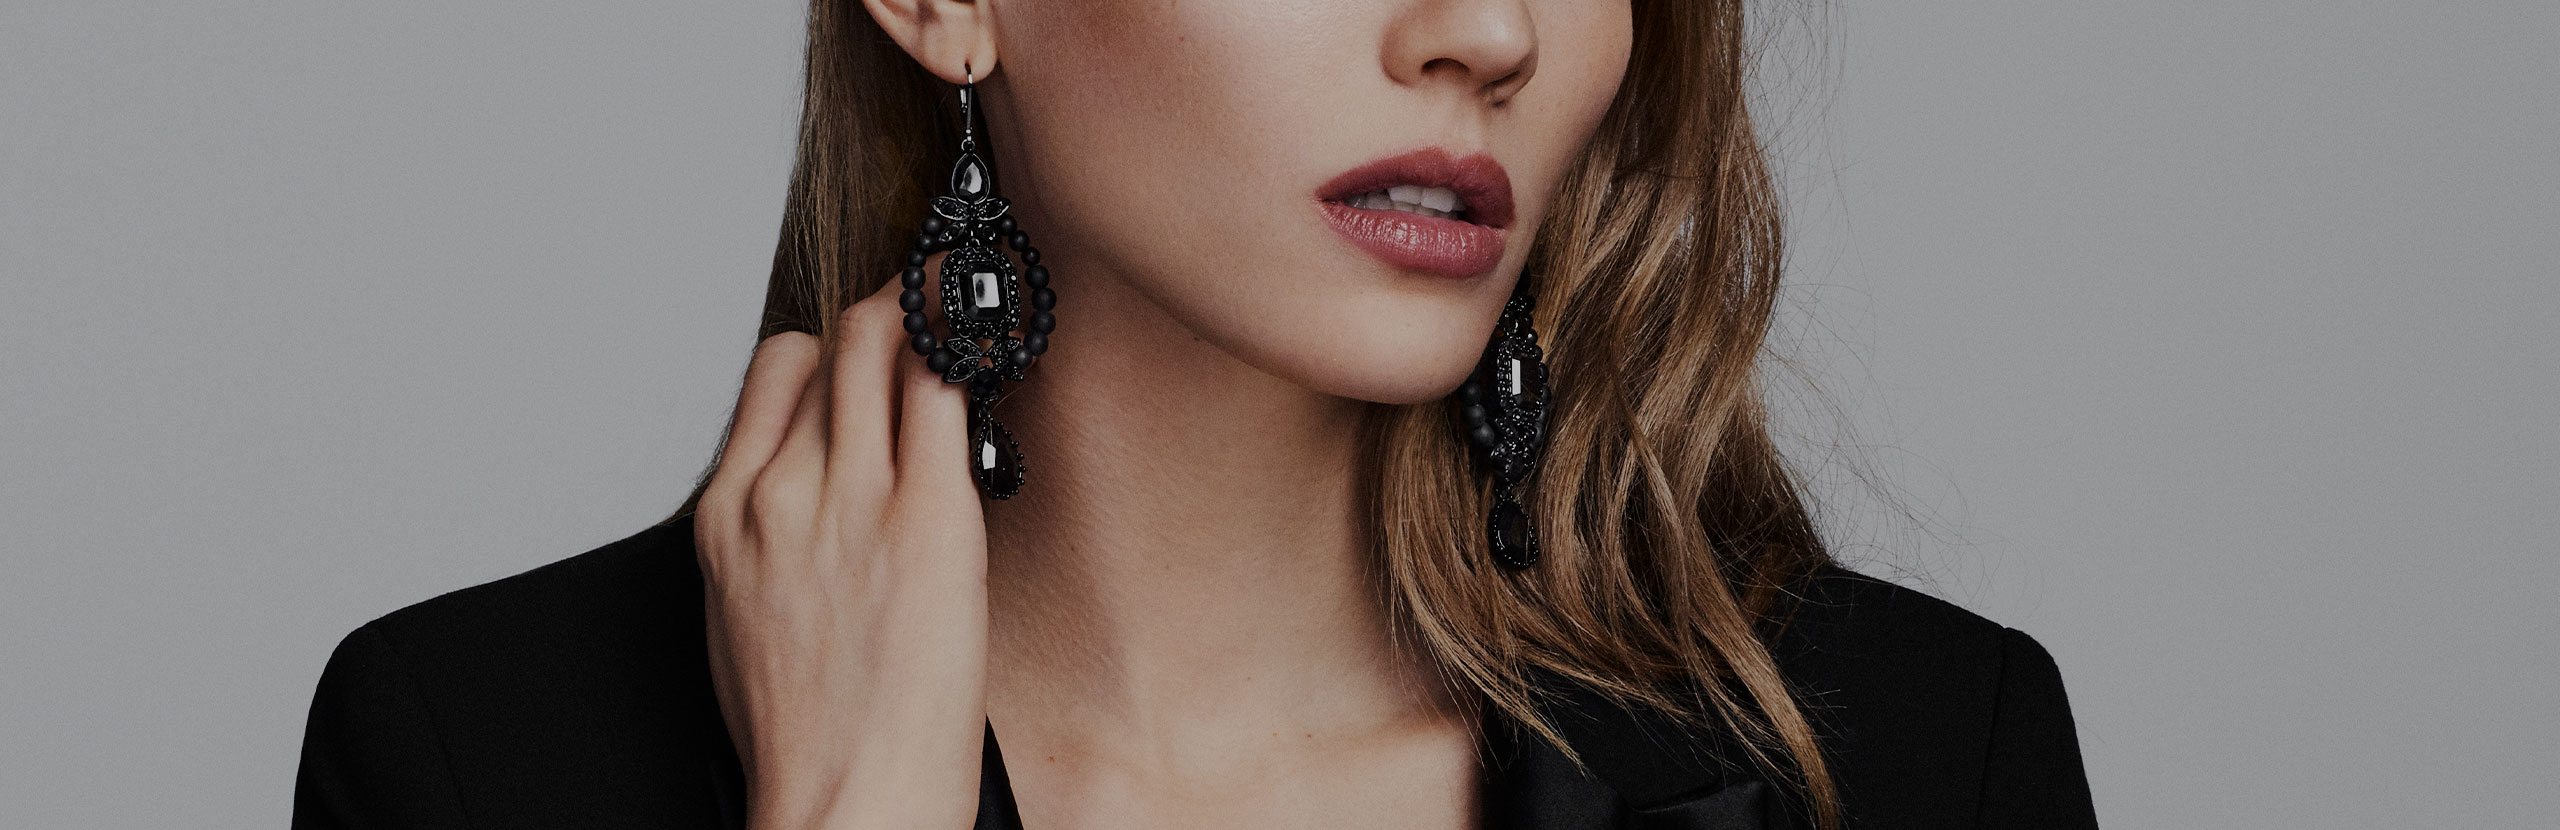 Close up photo of woman wearing Jewelry produced by The Jewelry Group